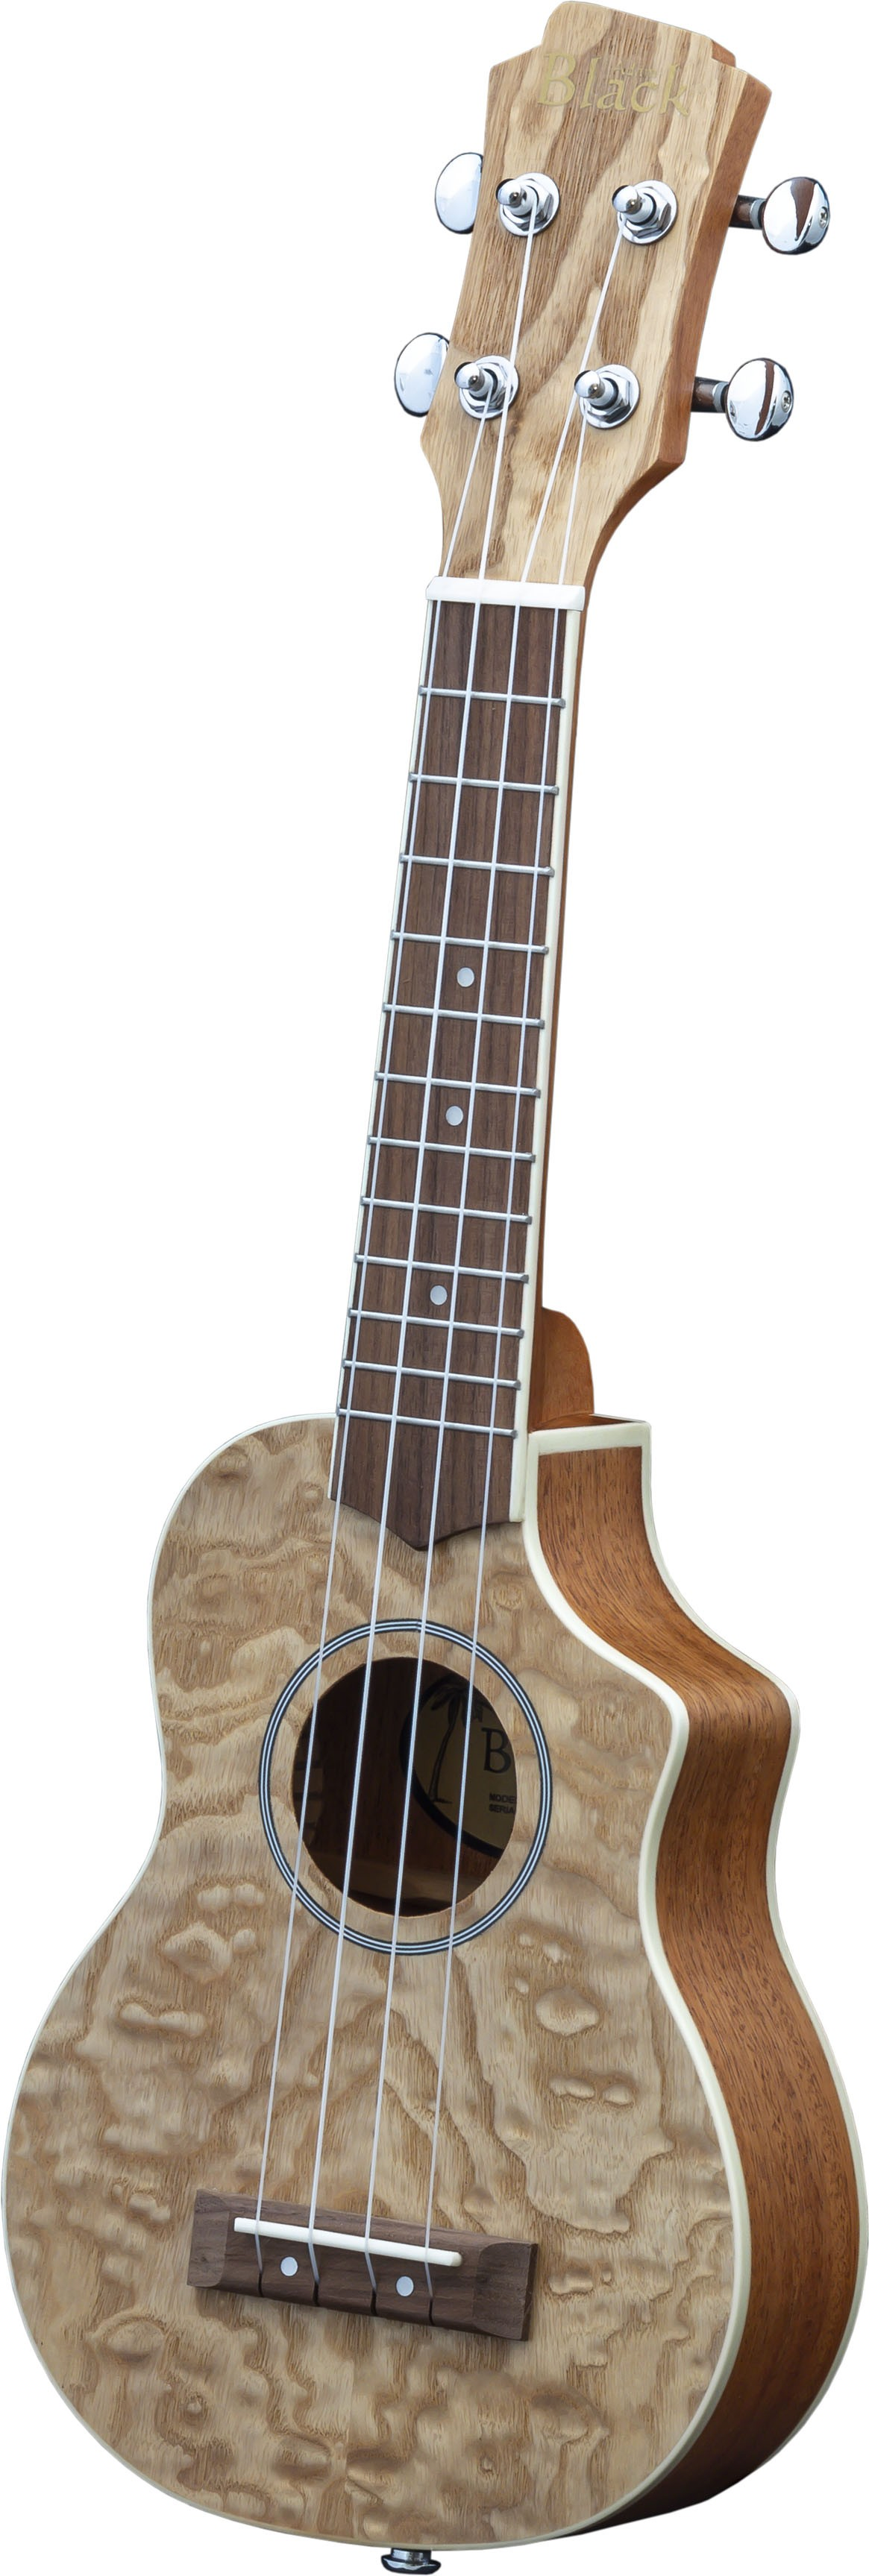 Adam Black Exotic Wood Series Soprano CE Ukulele - Quilted Ash